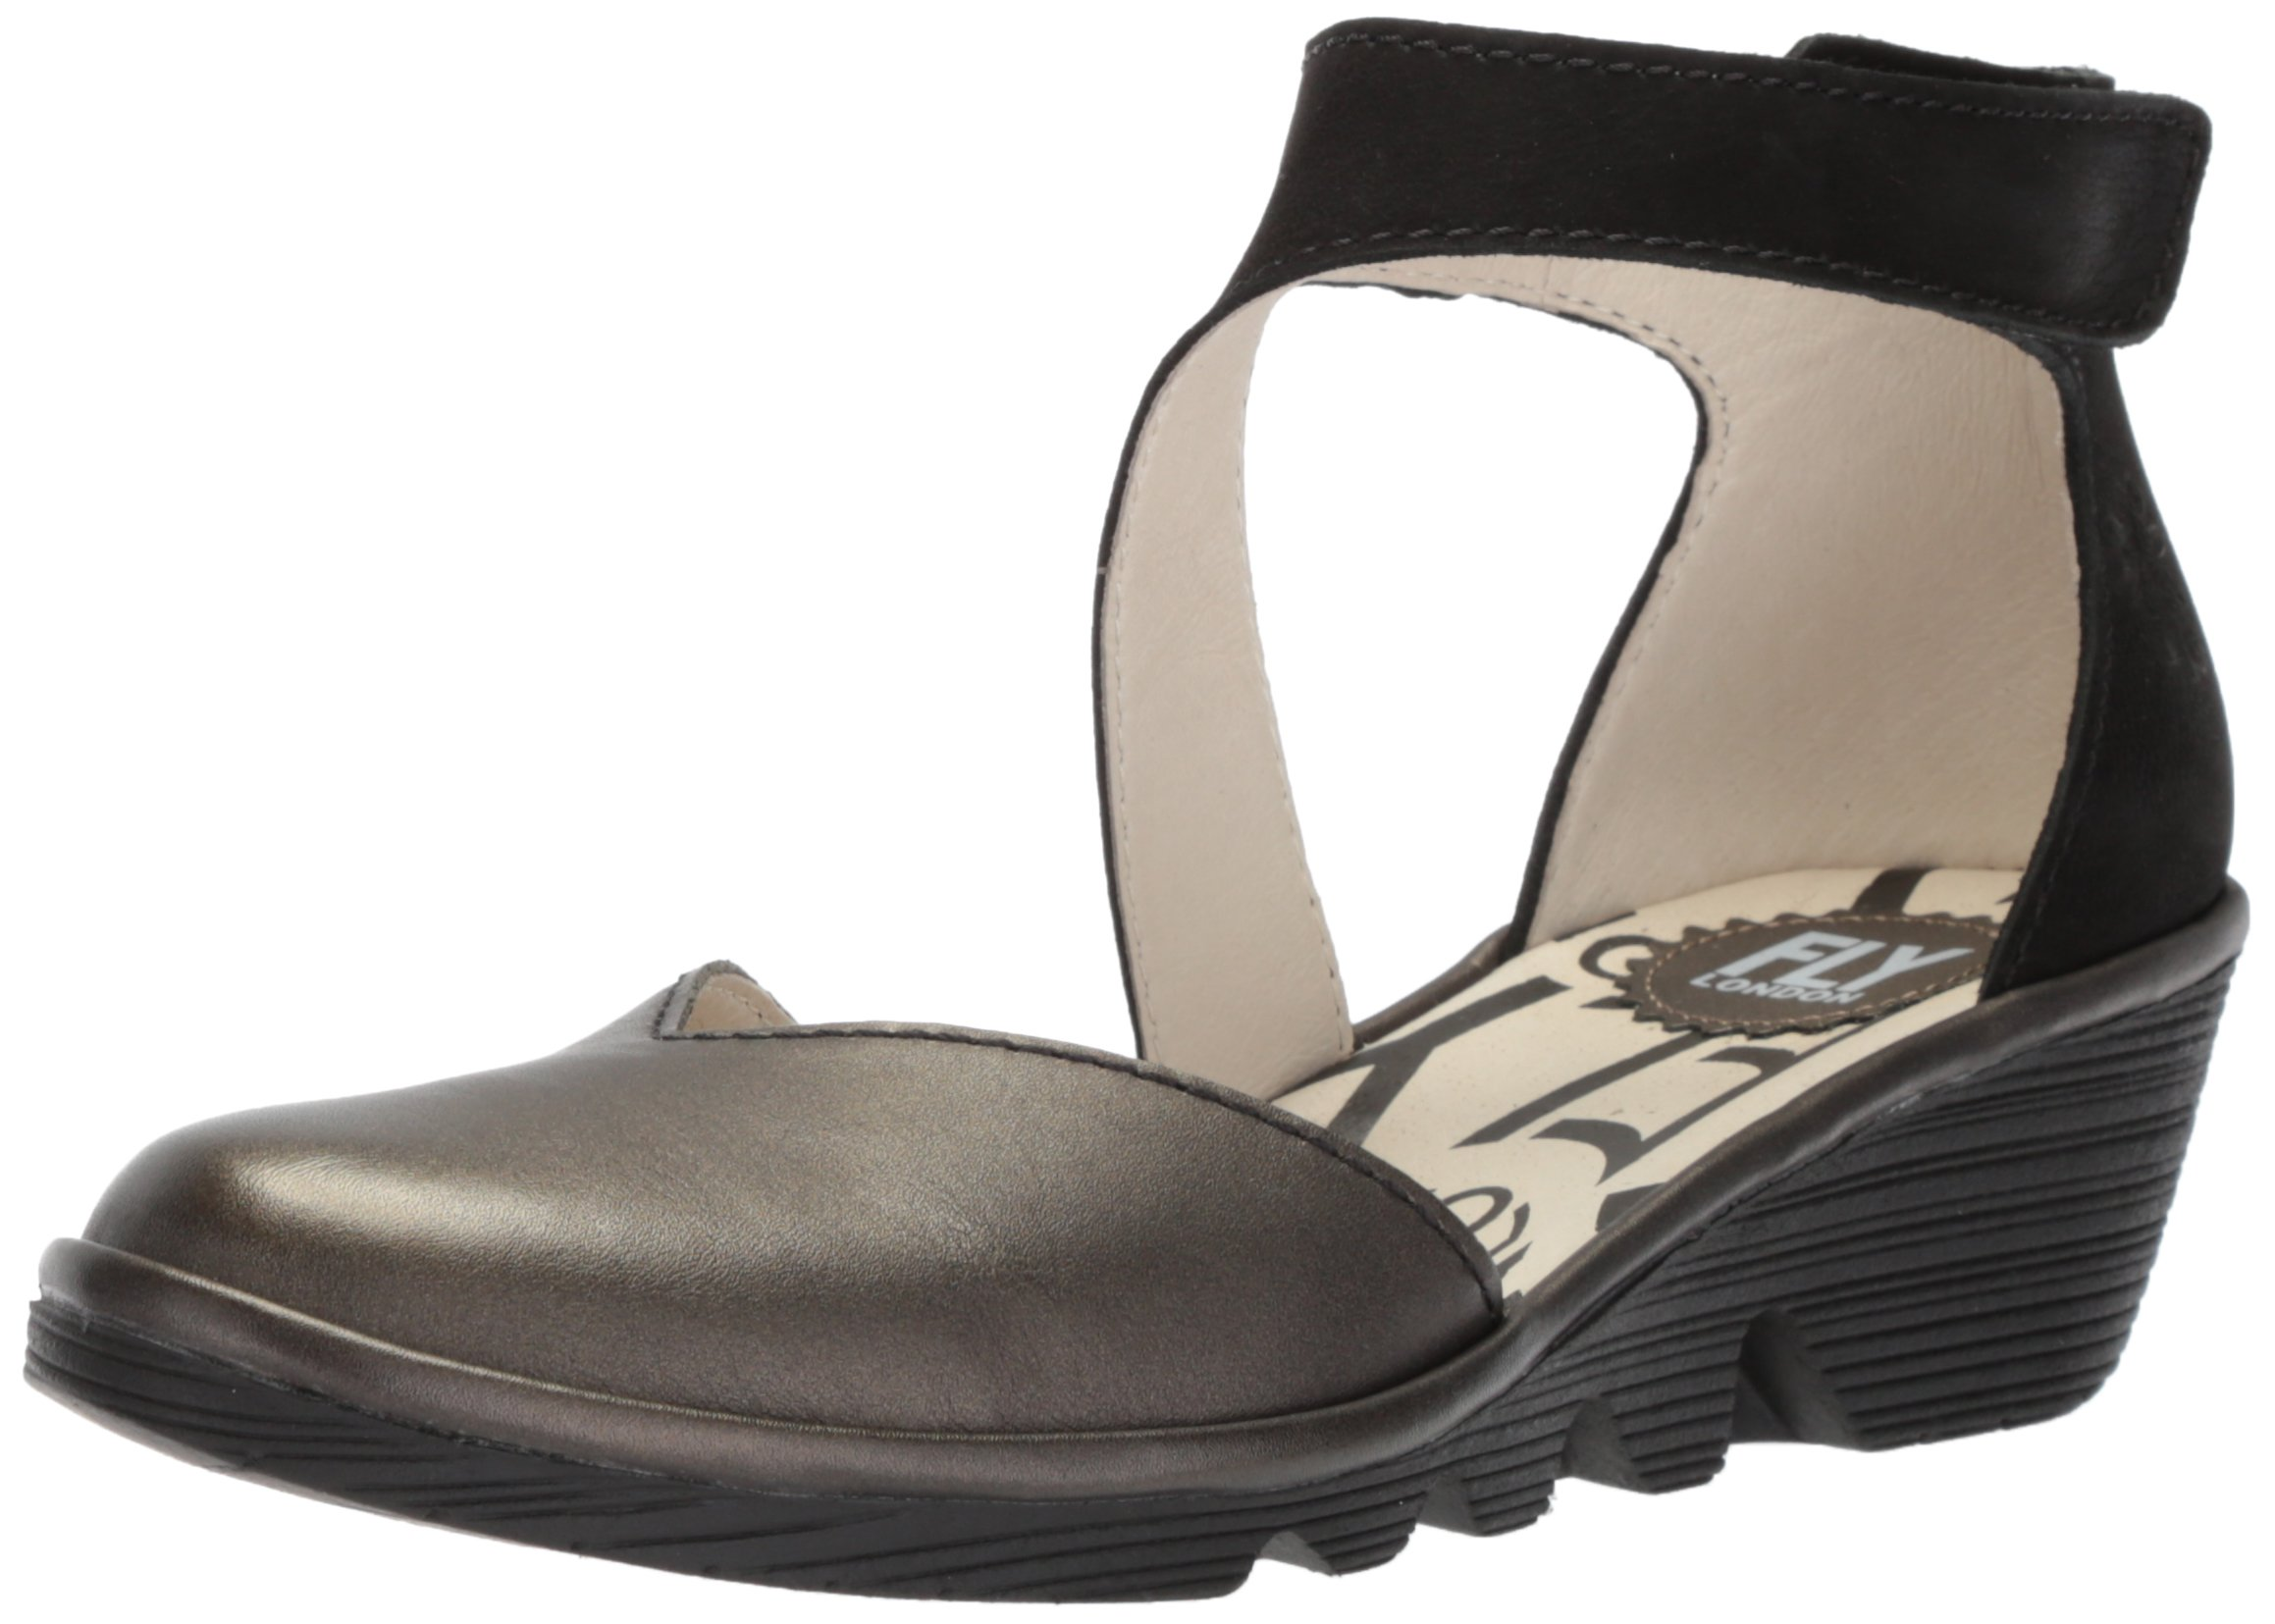 FLY London Women's PATS801FLY Wedge Sandal, Anthracite/Black Grace/Cupido, 38 M EU (7.5-8 US)